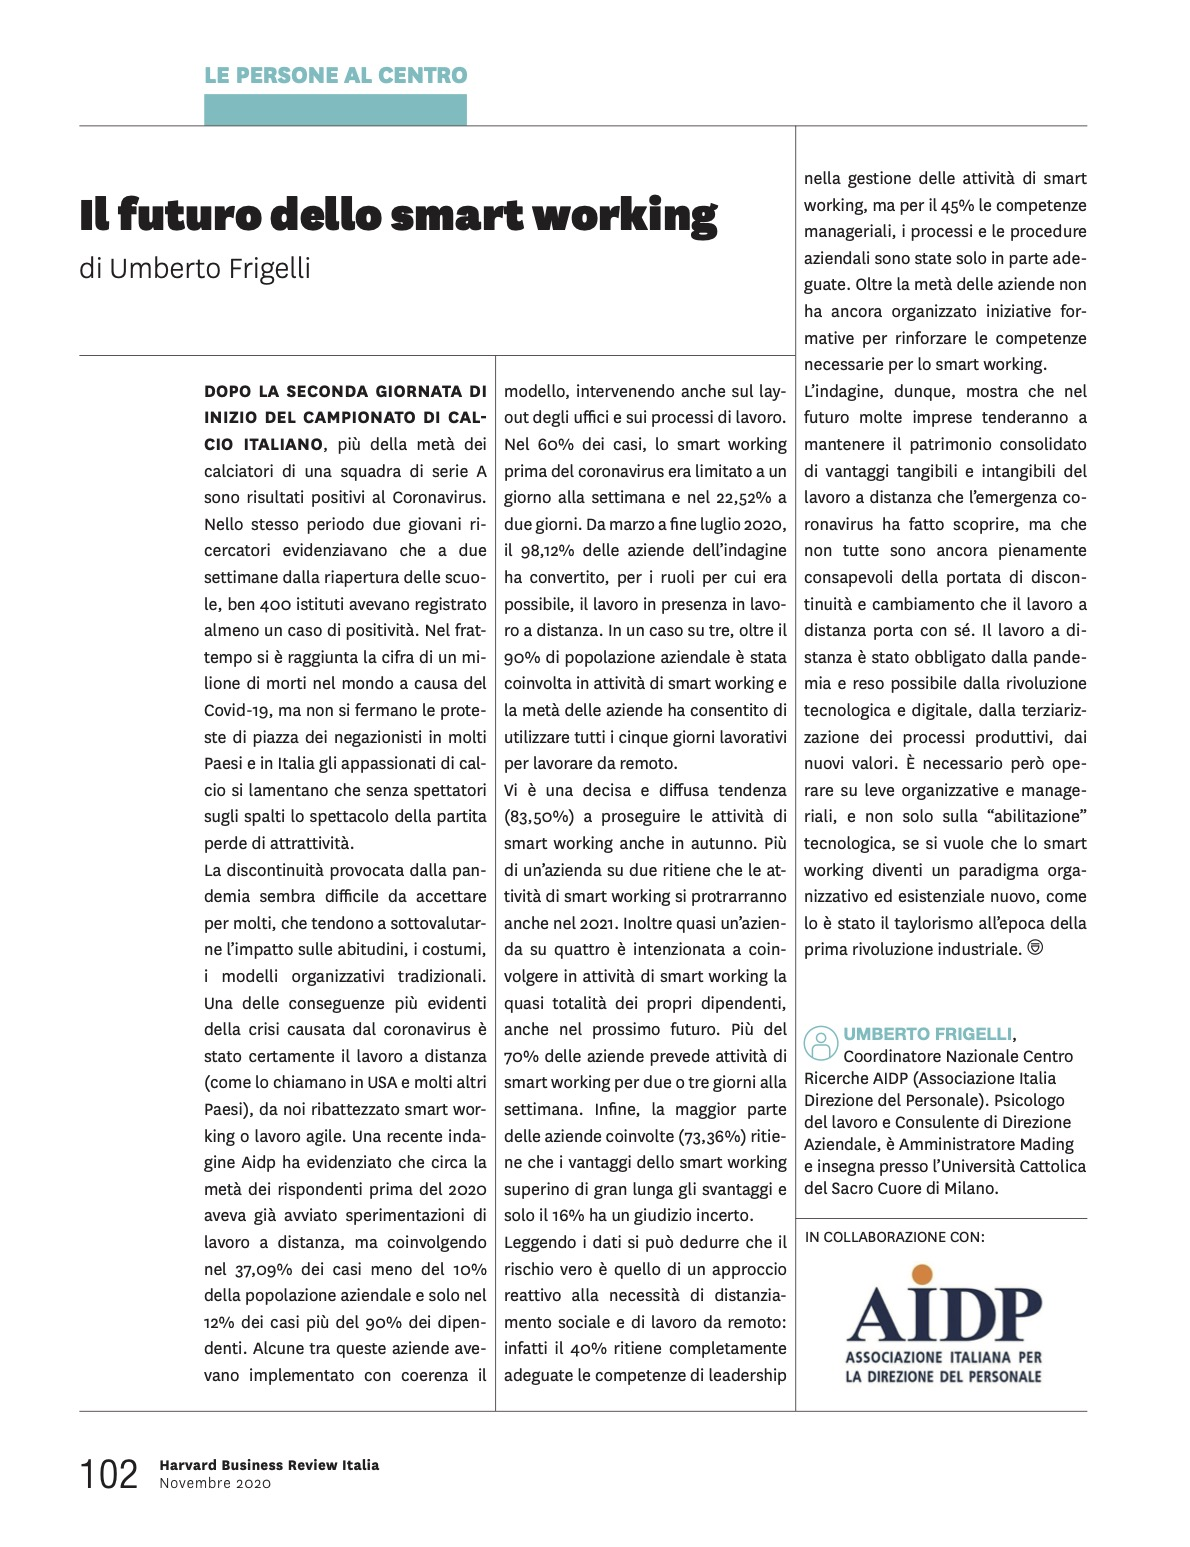 il futuro dello smart working